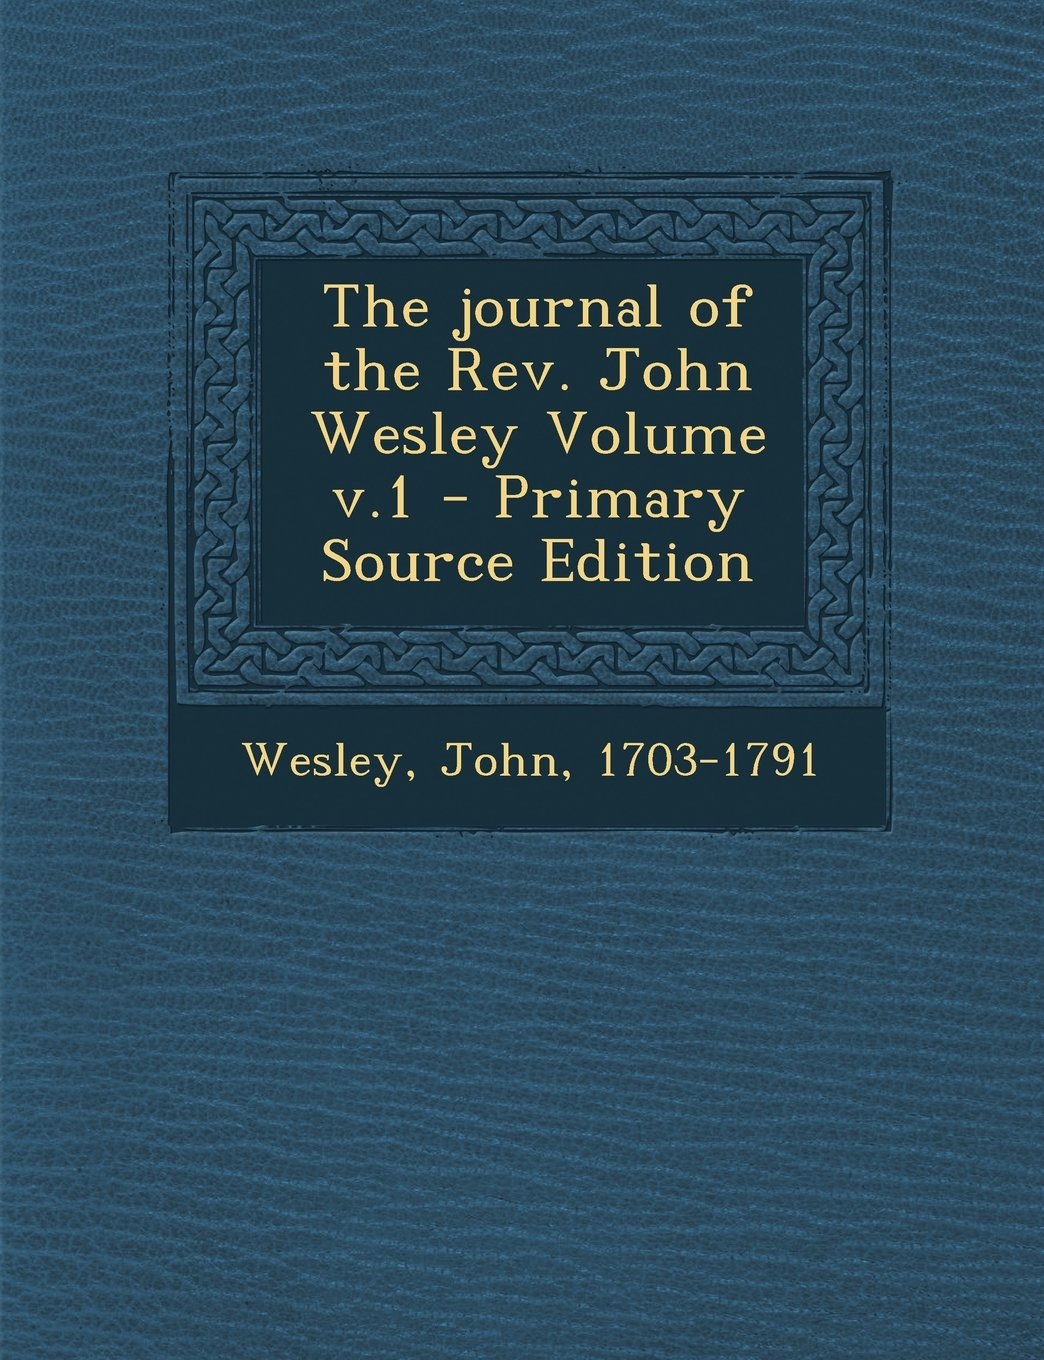 Download The Journal of the REV. John Wesley Volume V.1 - Primary Source Edition ebook